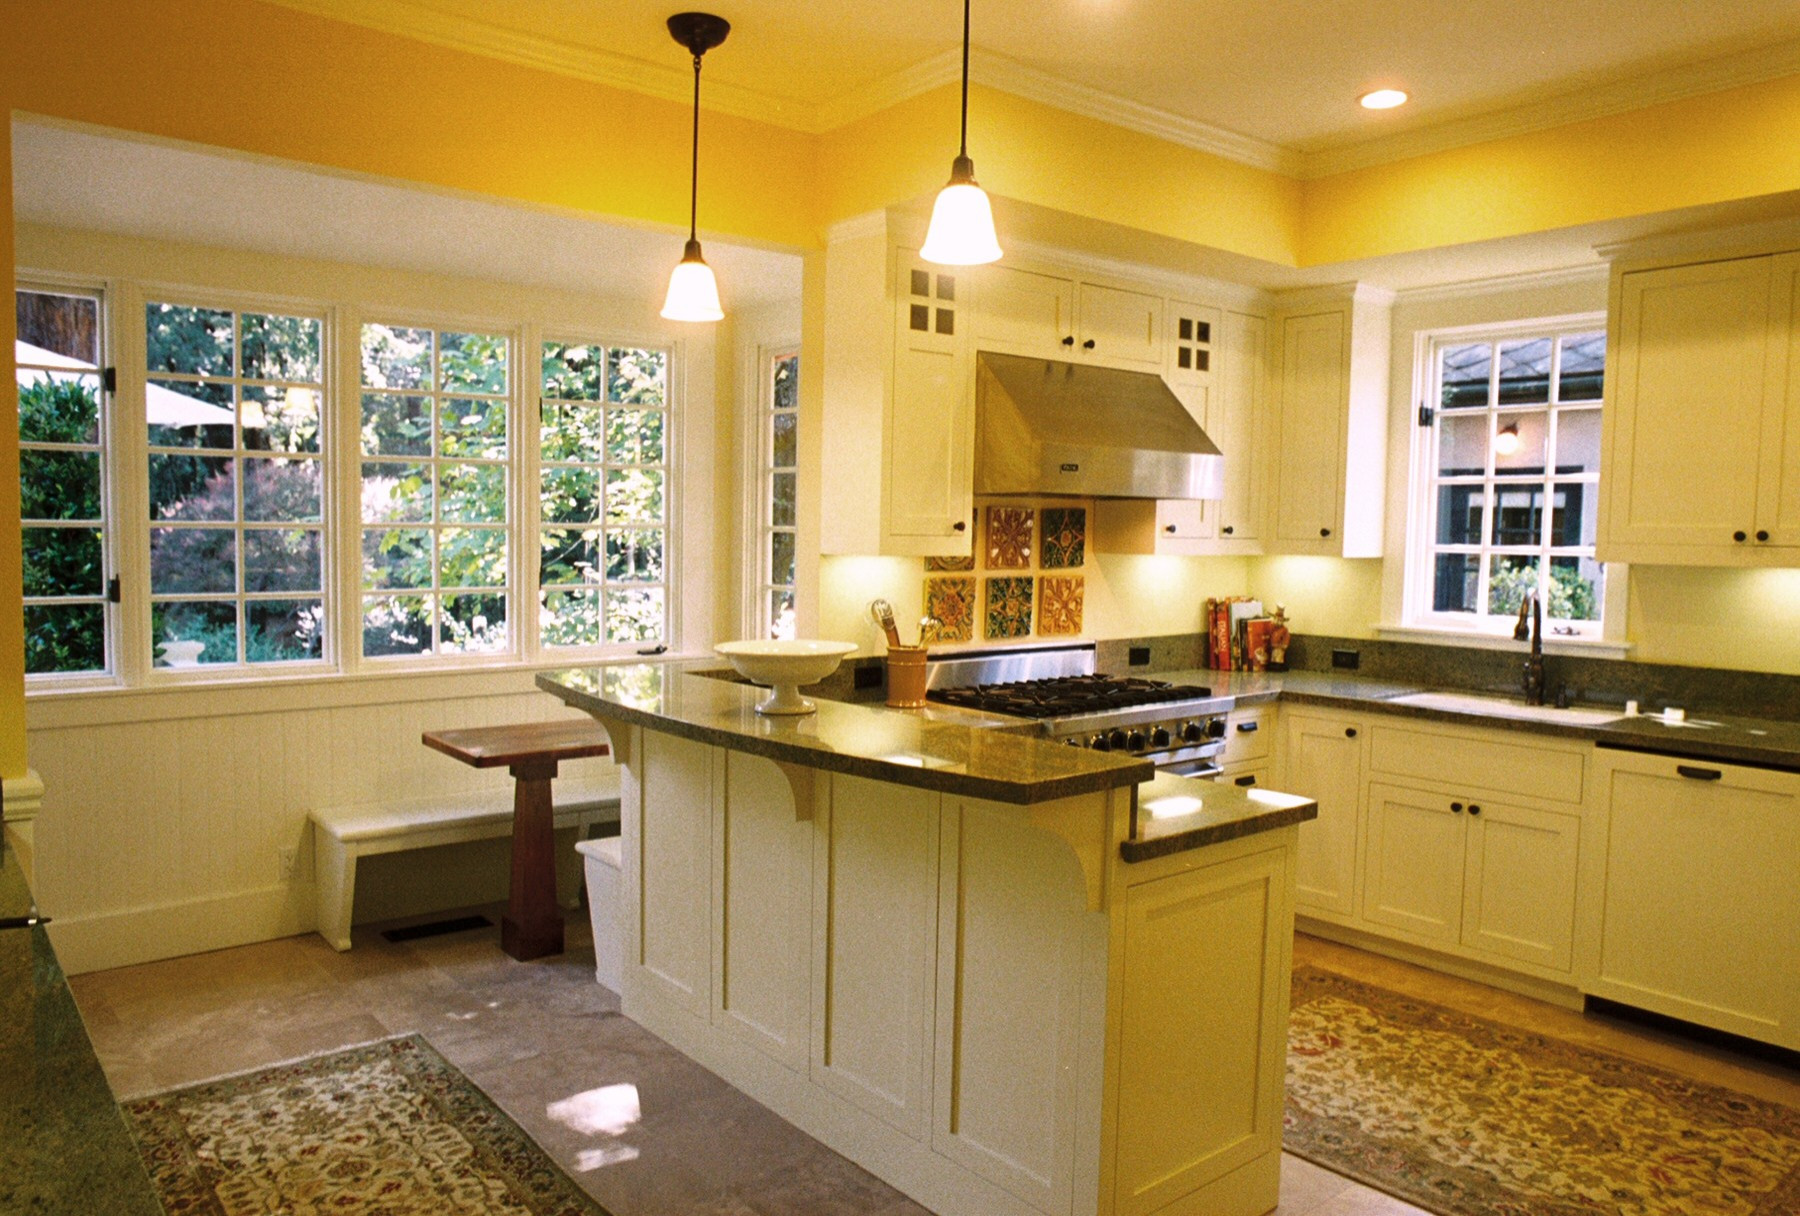 Mill Valley Shingle style re-build